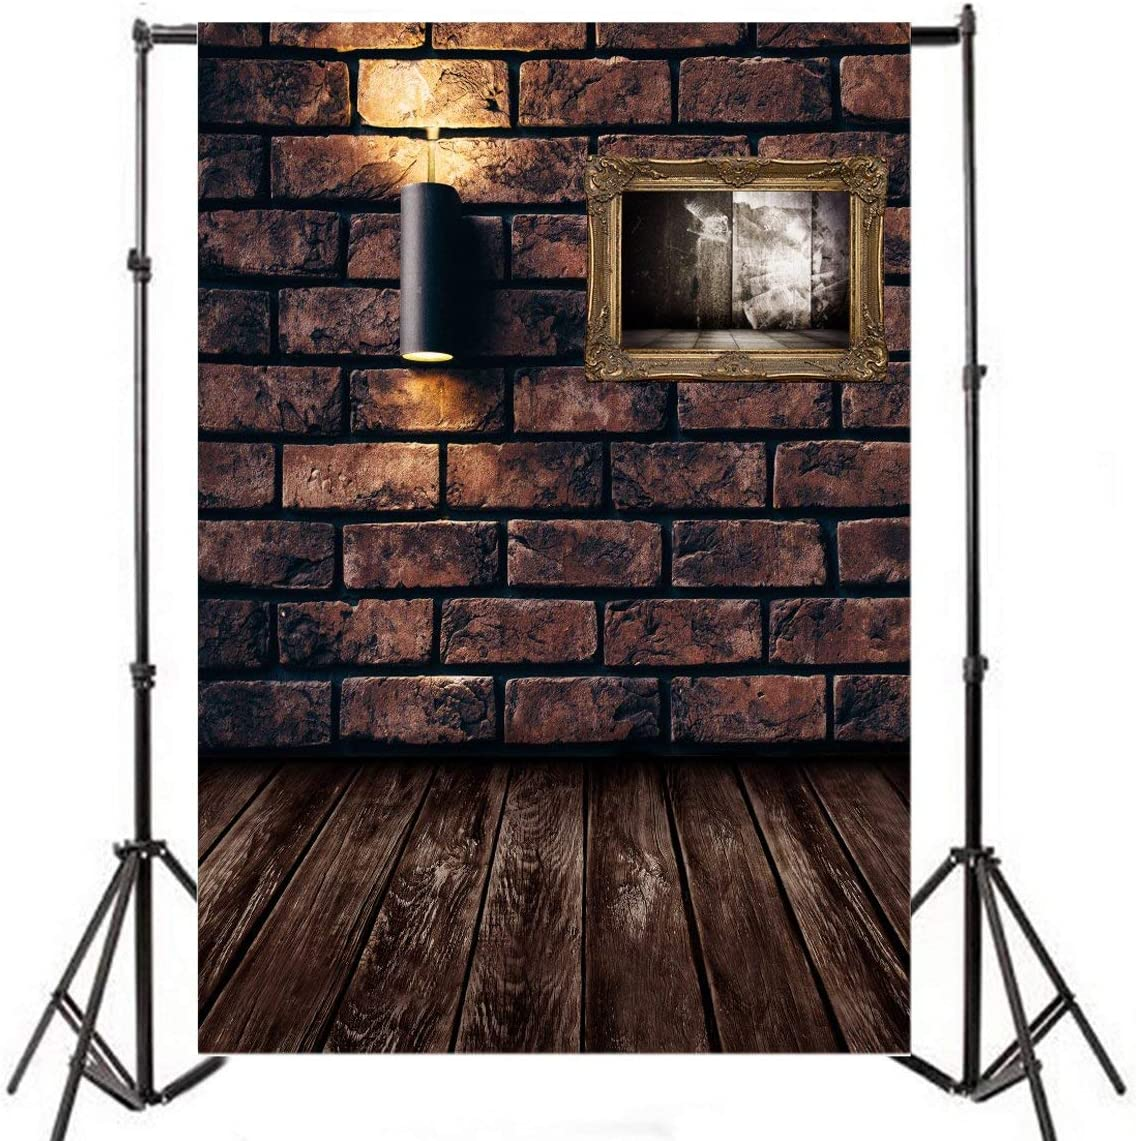 12x8FT Photography Backdrop Happy Halloween Backdrop Vintage Grunge Castle Rough Brick Wall Wood Floor Countryside Barn Dirty Prison Collapsible Photo Portrait Vinyl Studio Video Props